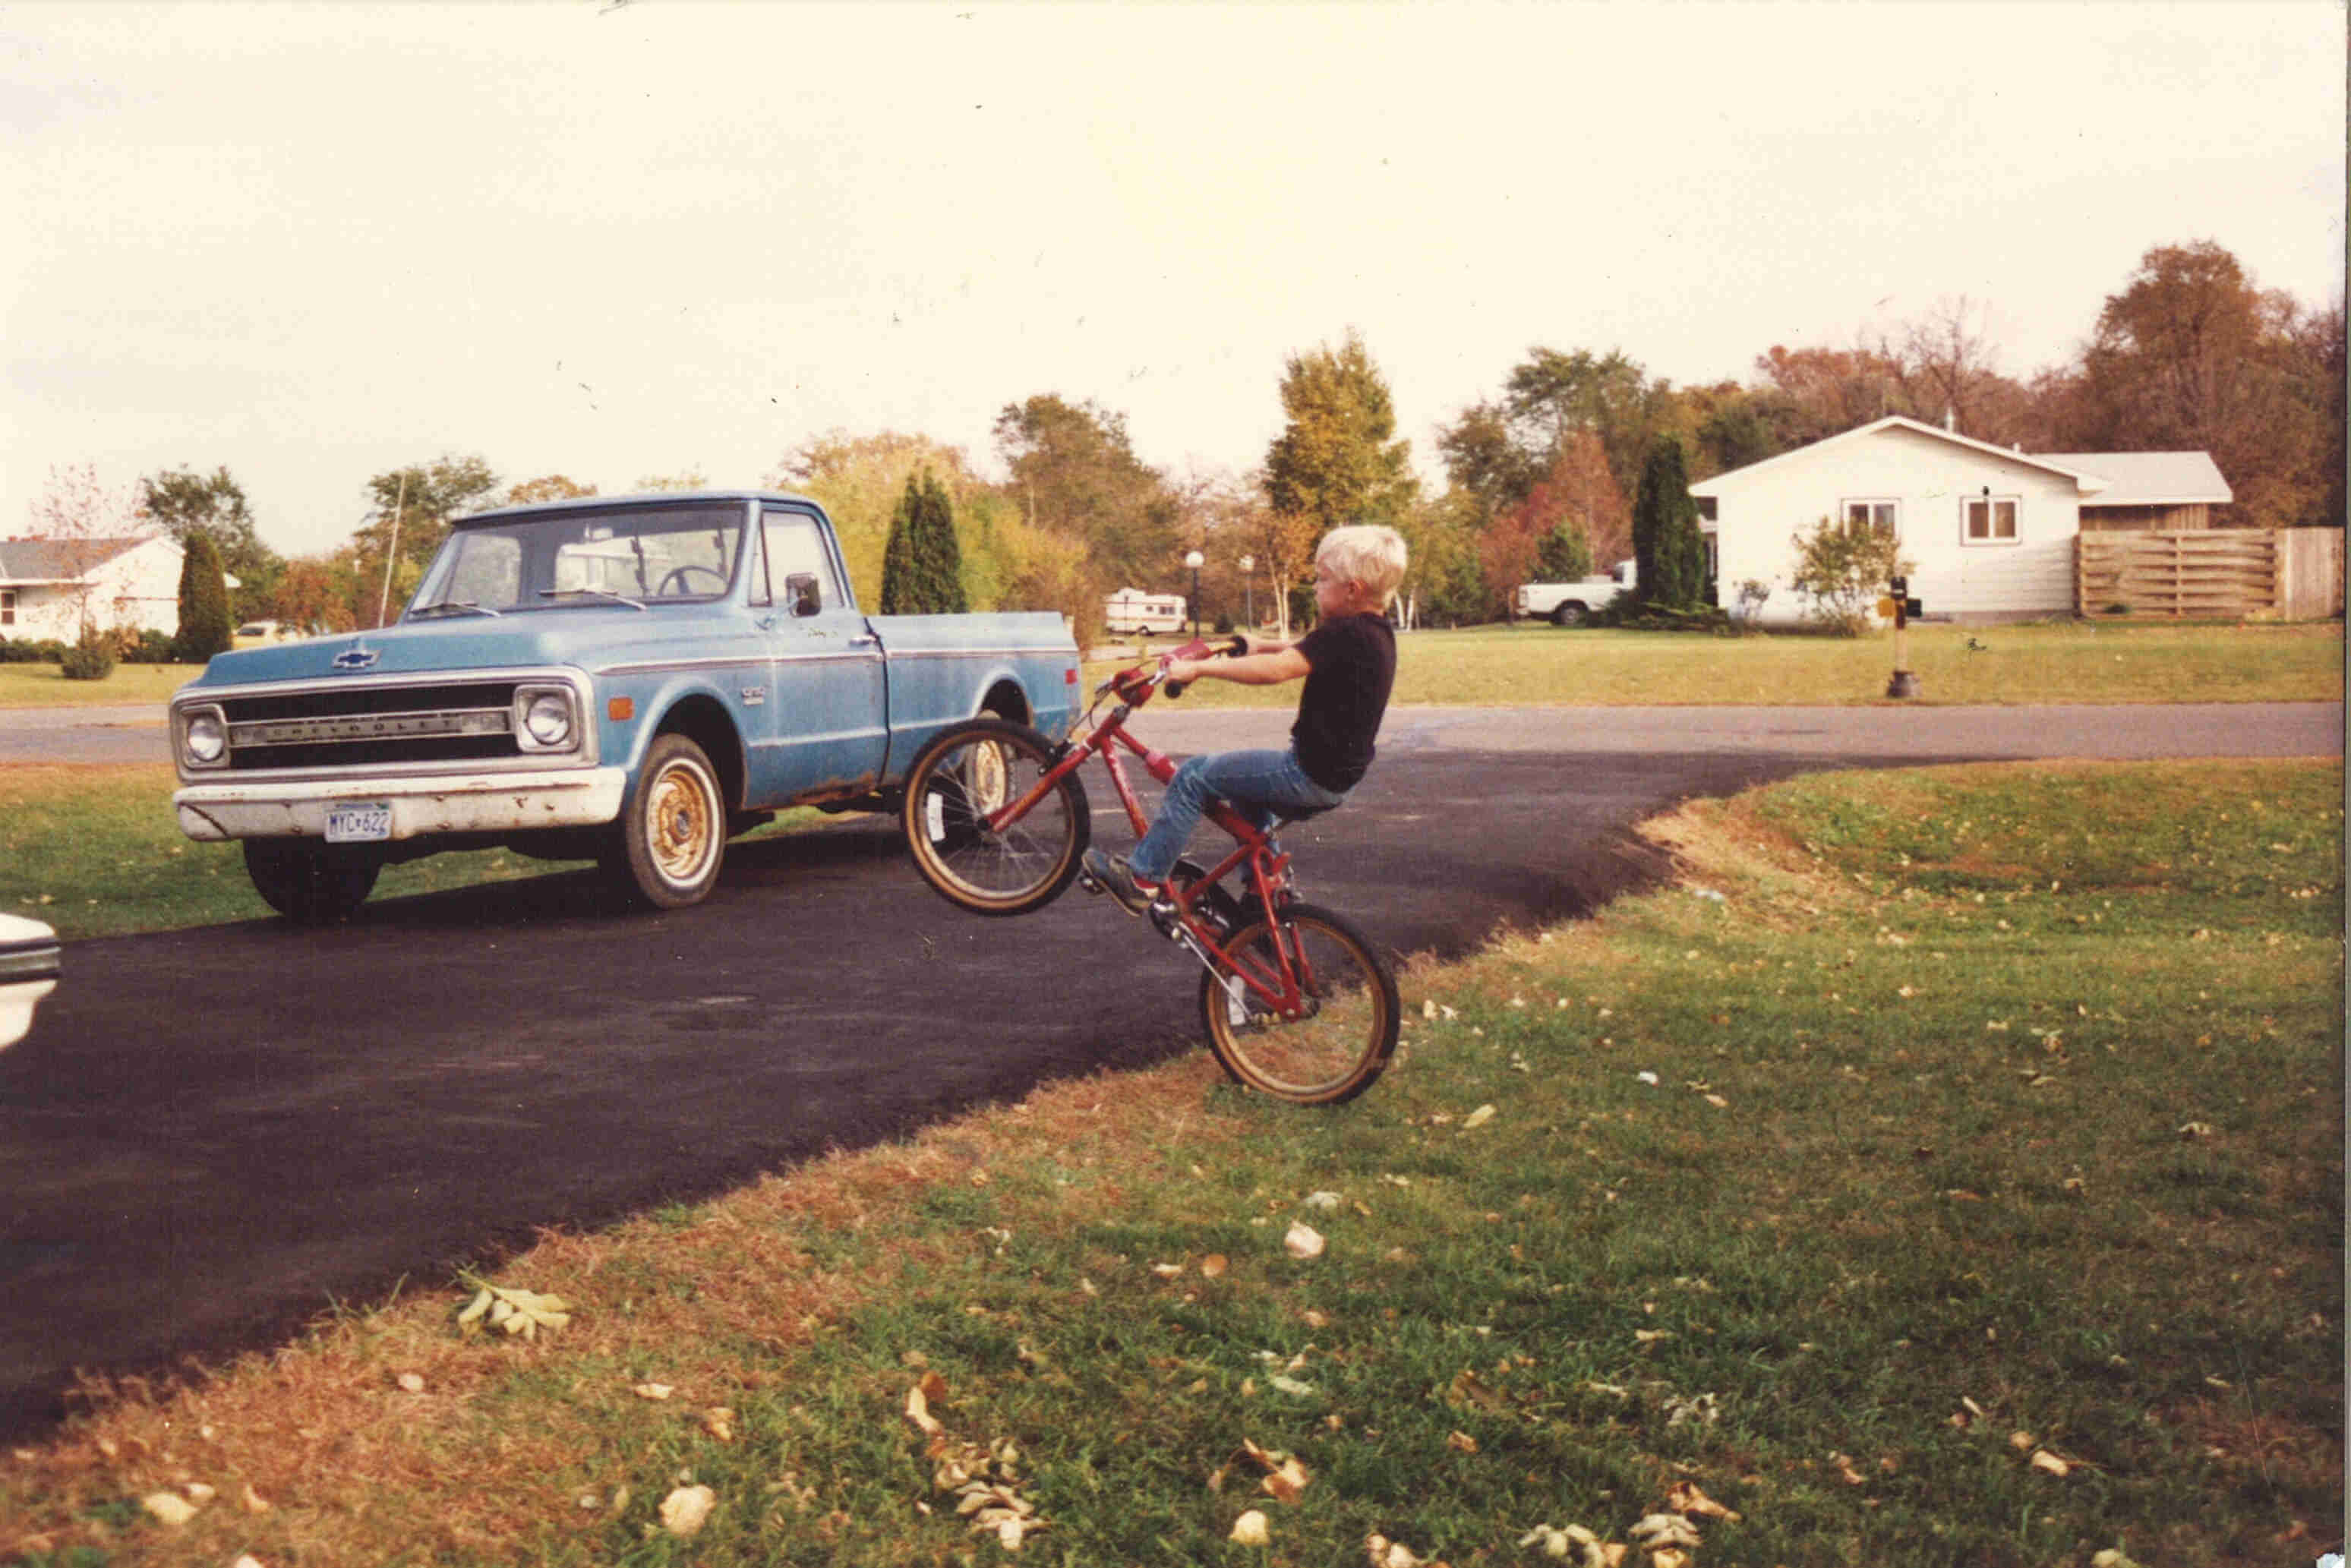 Left side view of a child riding a wheelie on a red BMX bike, next to a driveway with a blue truck parked on it